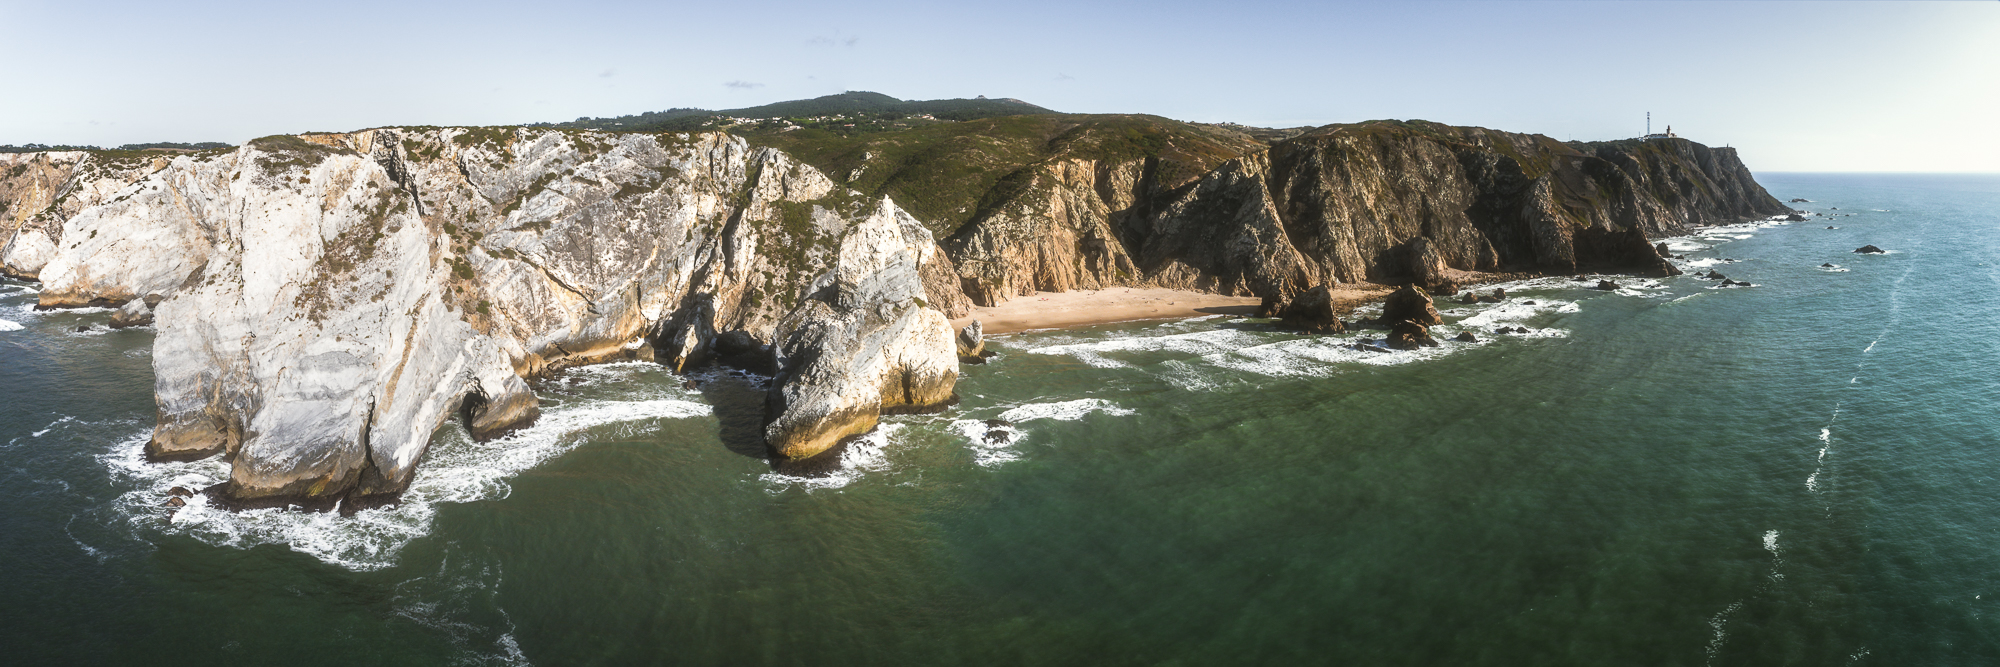 Portugal, Praia da Ursa, beach, Strand, Felsen, Klippen, Rocks, Cliffs, Landscape, Landschaft, Natur, Nature, Sunset, Sonnenuntergang, Travel, Reise, Blue Hour, Blaue Stunde, DJI, Phantom 4 Pro